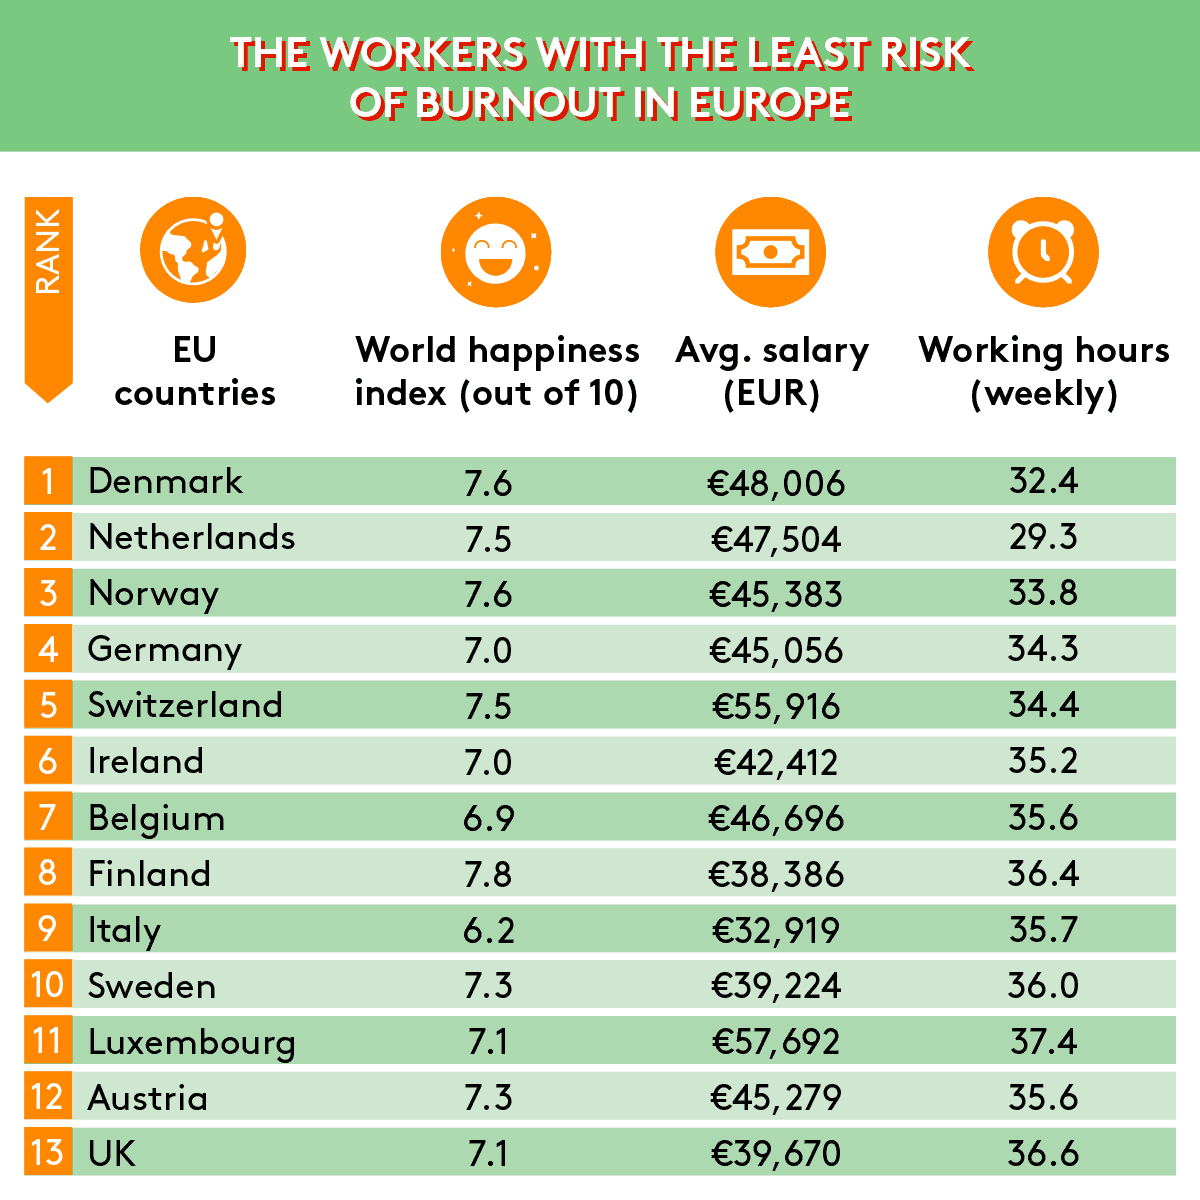 Top 13 Least at Risk of Burnout